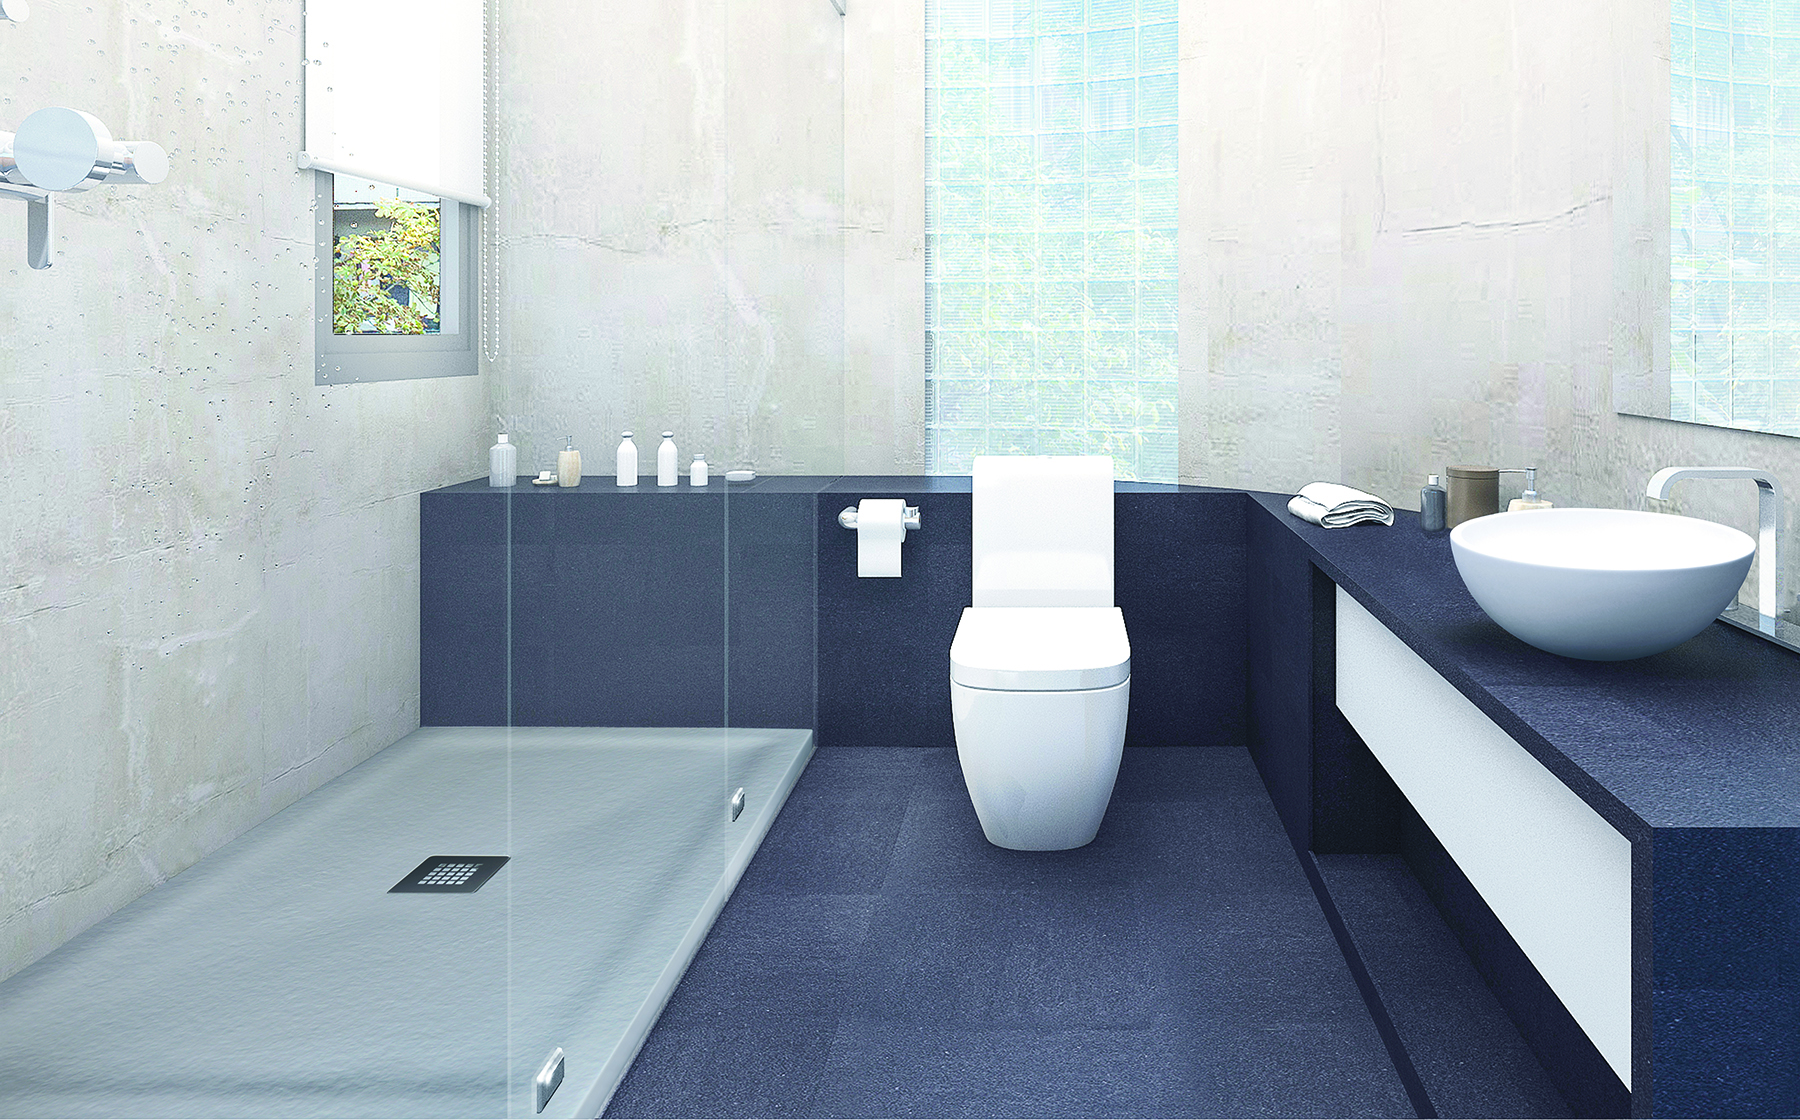 Plato Ducha Natural.Shower Tray Nature Plus Forms And Design In Shower Tray